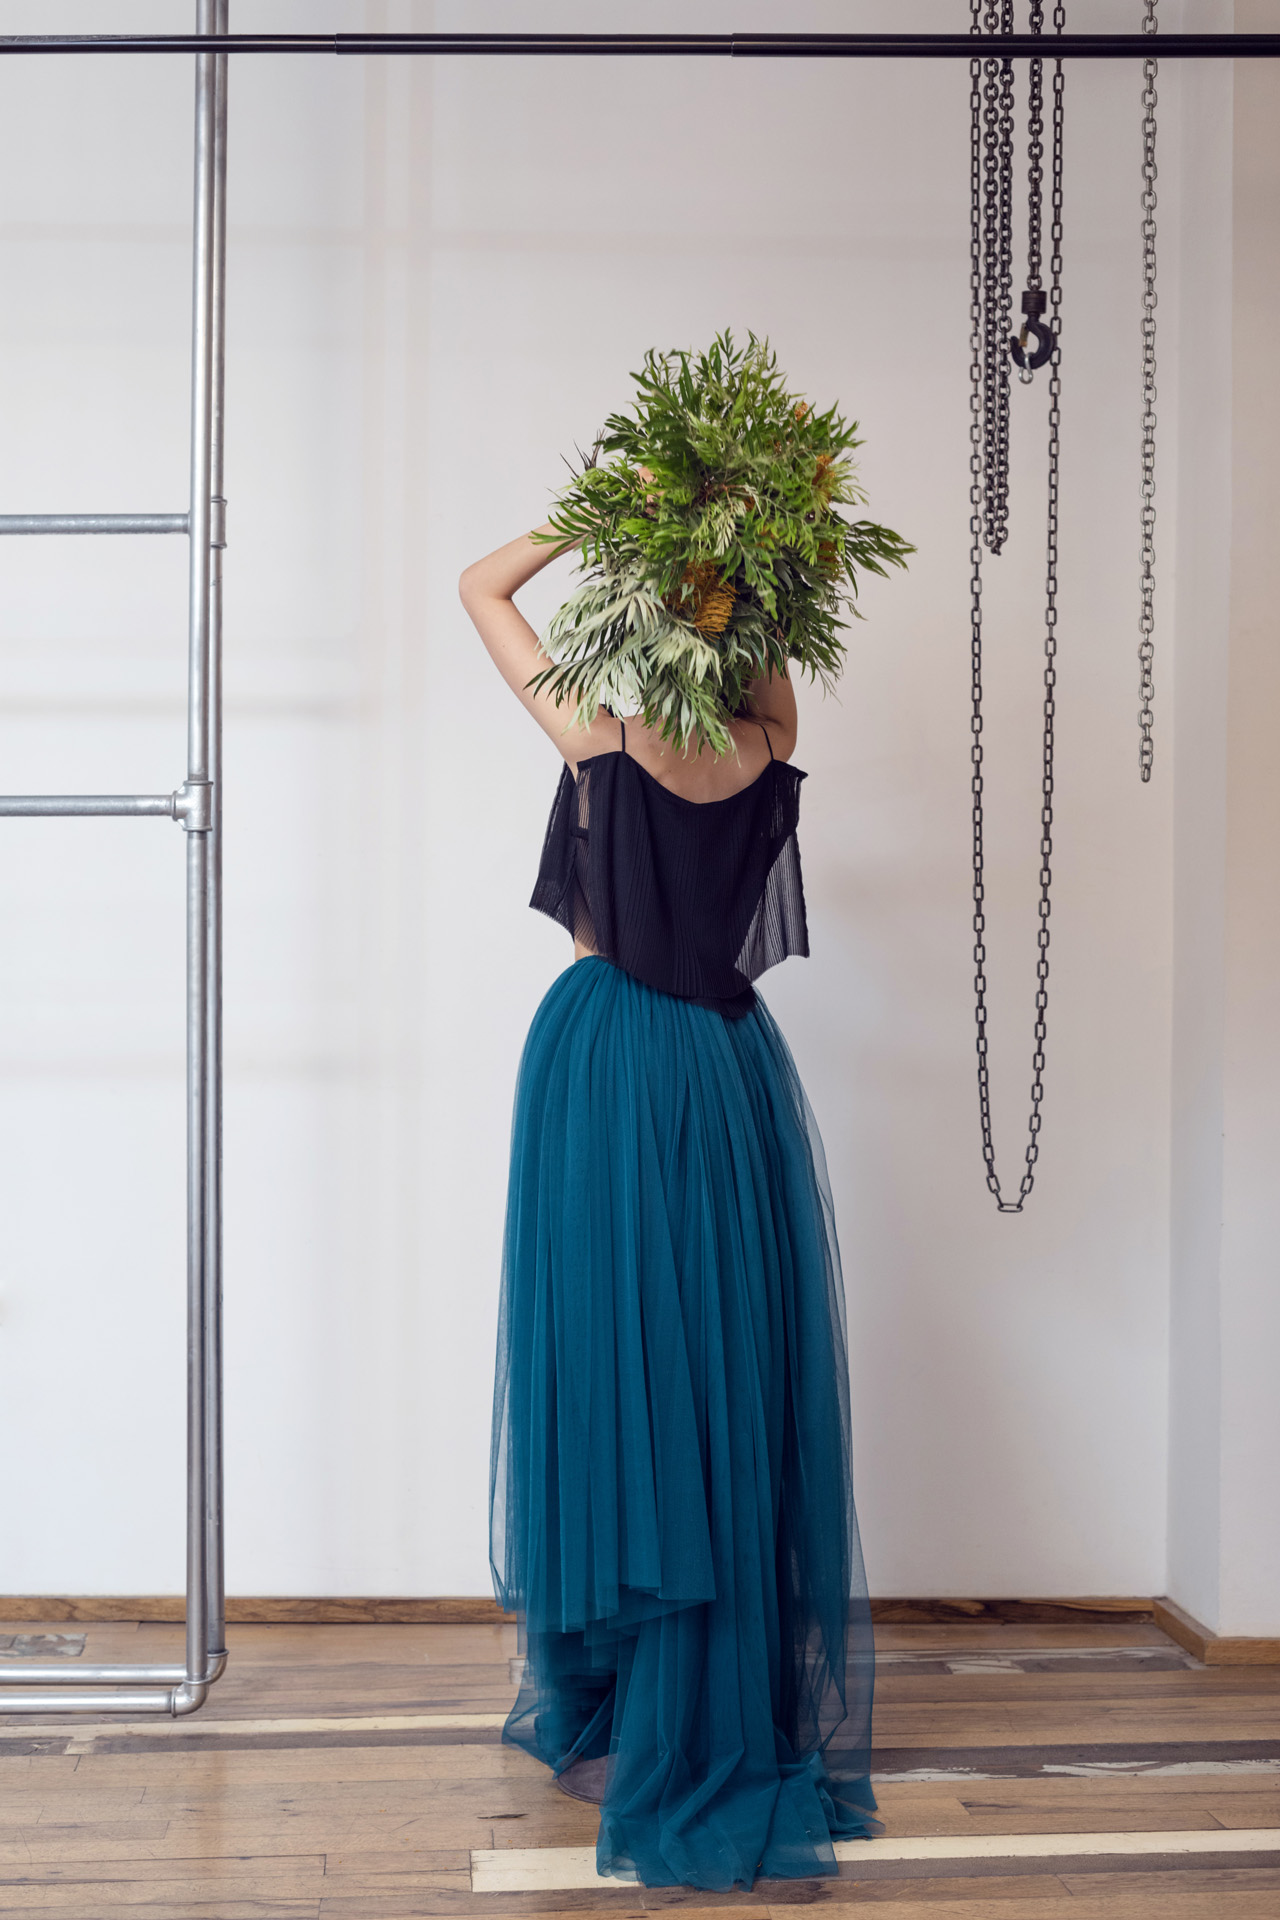 Lara Khoury | LK Stripped | Capsule 1-2019 | 13-Lara Khoury | LK Stripped | Capsule 1-2019 | 13- Tiered Double Layer Black Cotton Crop Top and Voluminous Blue Green Tulle Maxi Skirt 2.jpg